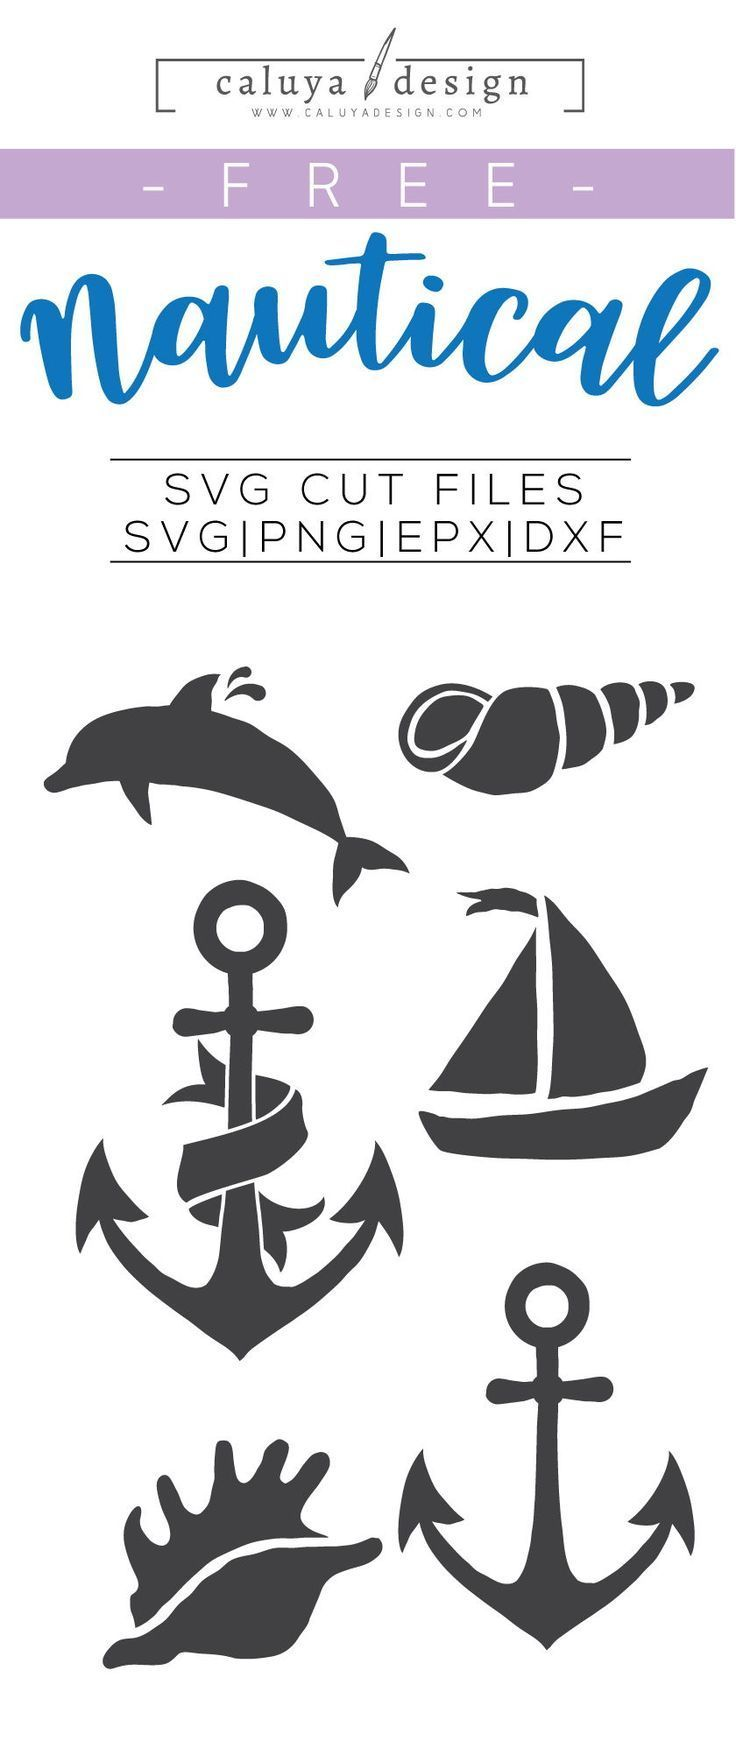 Photo of Free Nautical Elements SVG, PNG, EPS & DXF By Caluya Design